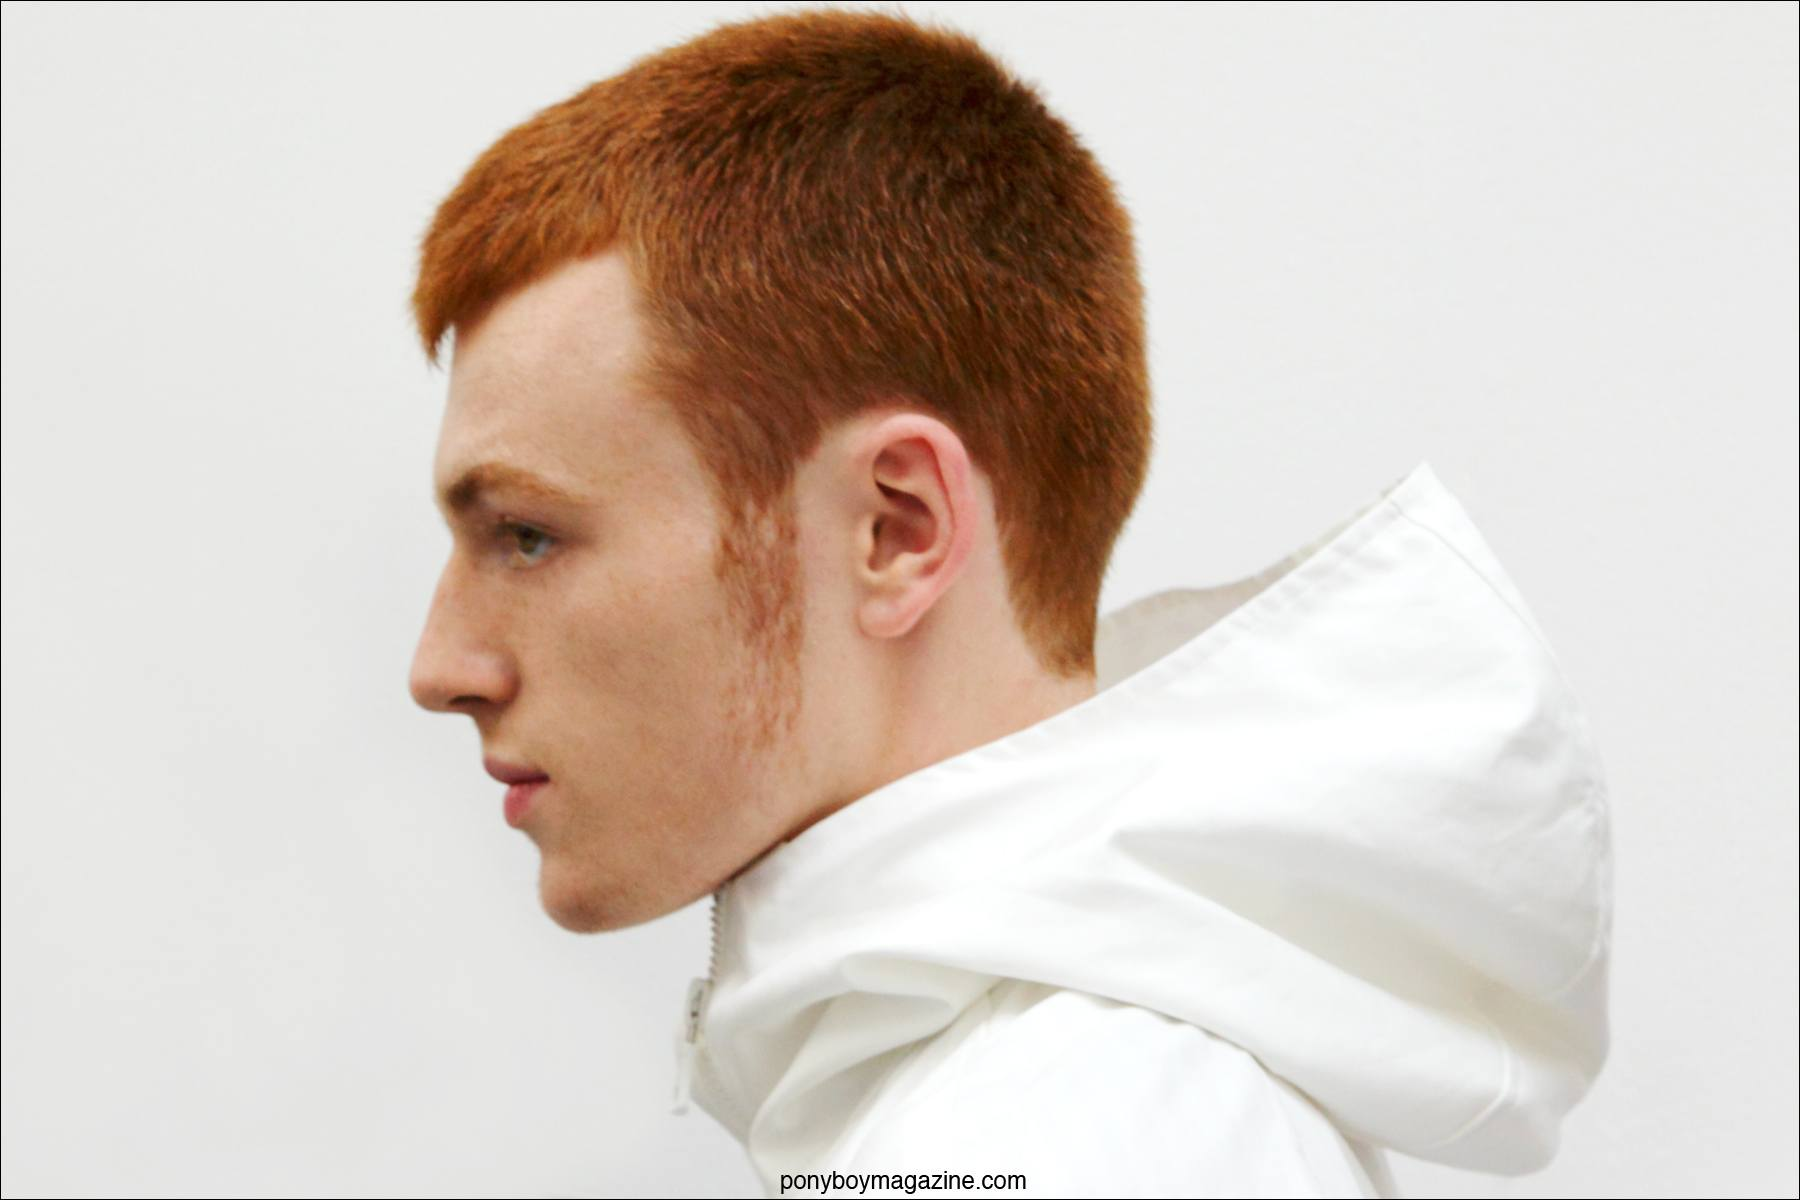 A red-headed male model wears a hooded jacket designed by Duckie Brown S/S15. Photographed at Industria Studios in New York by Alexander Thompson for Ponyboy Magazine.